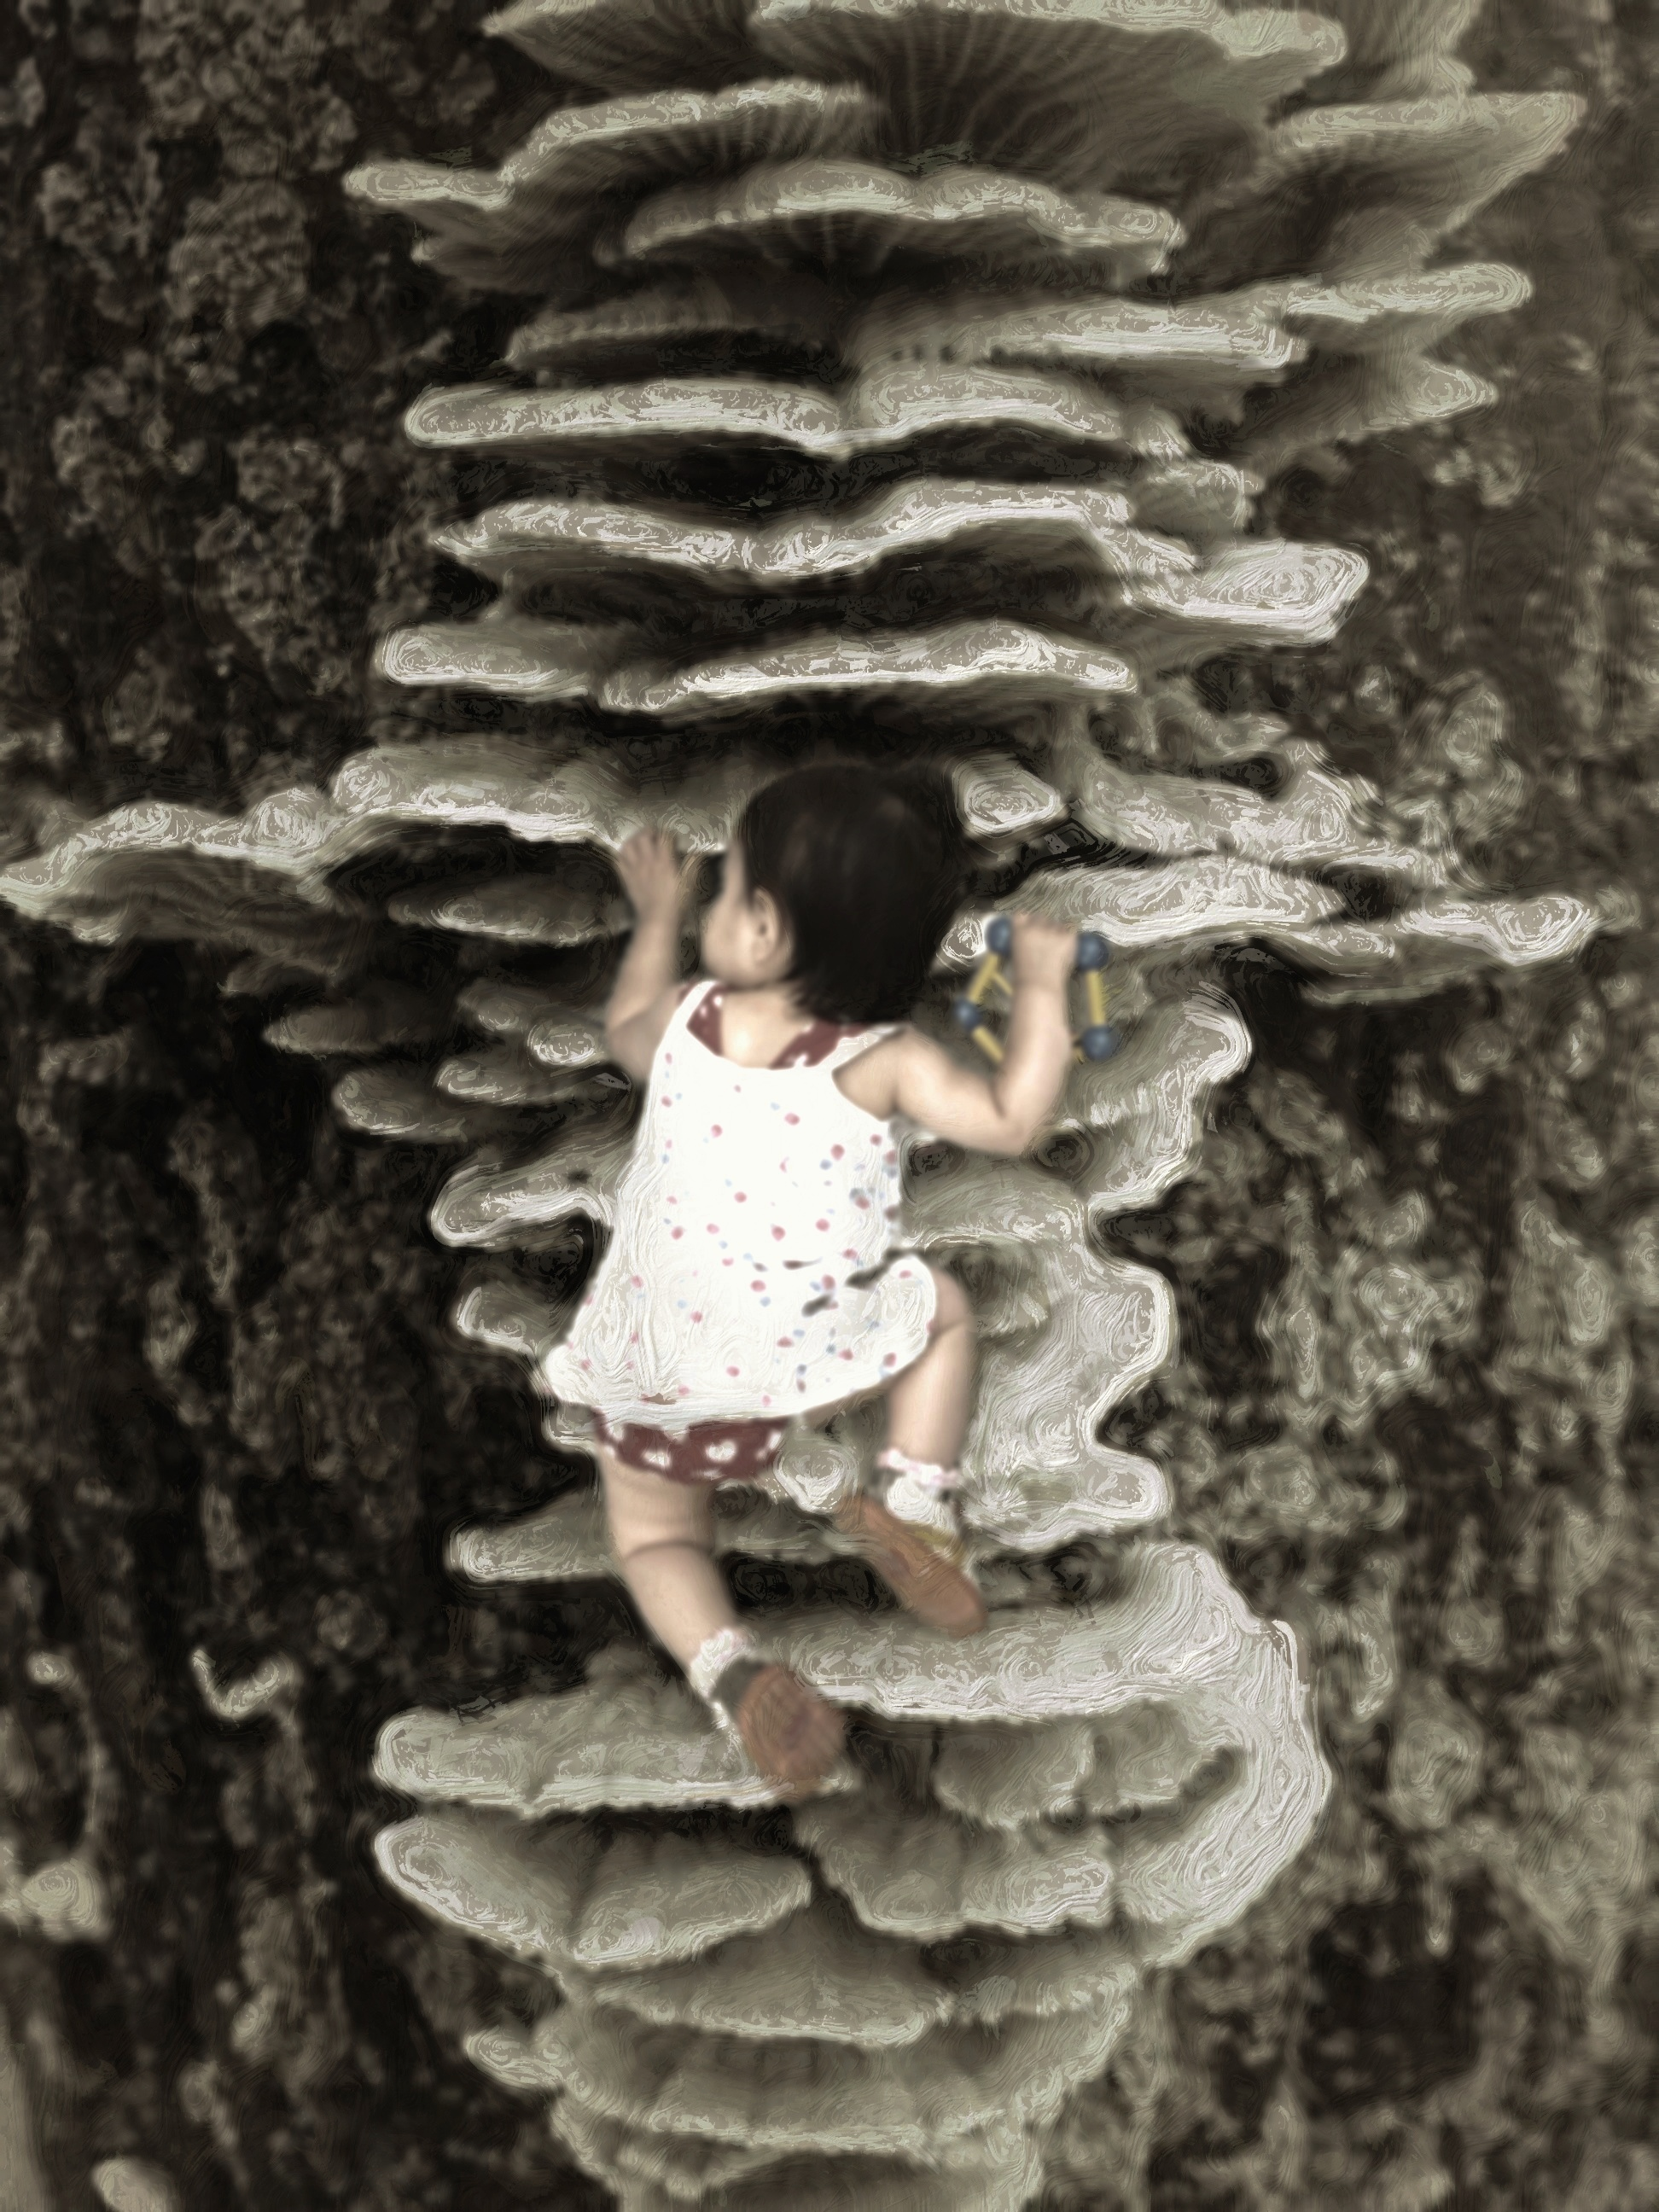 Climbing up through my daddy's dreams of giants and ogres